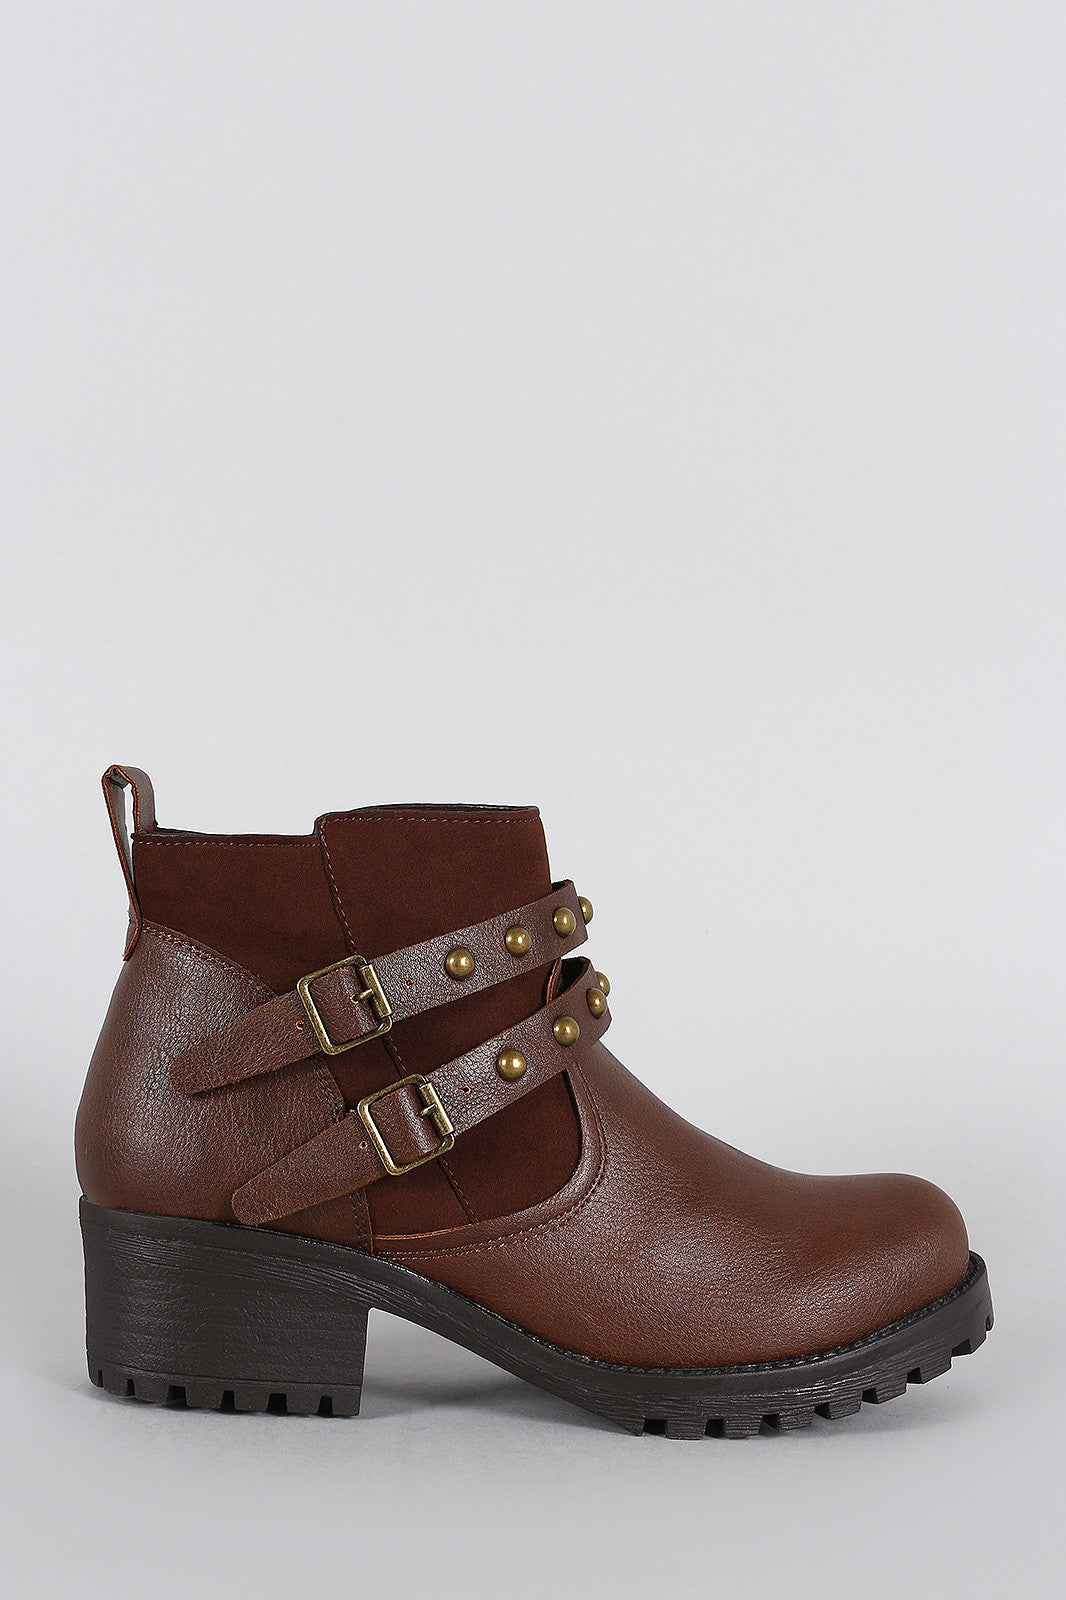 Bamboo Studded Buckle Strap Round Toe Booties - Thick 'N' Curvy Shop - 2